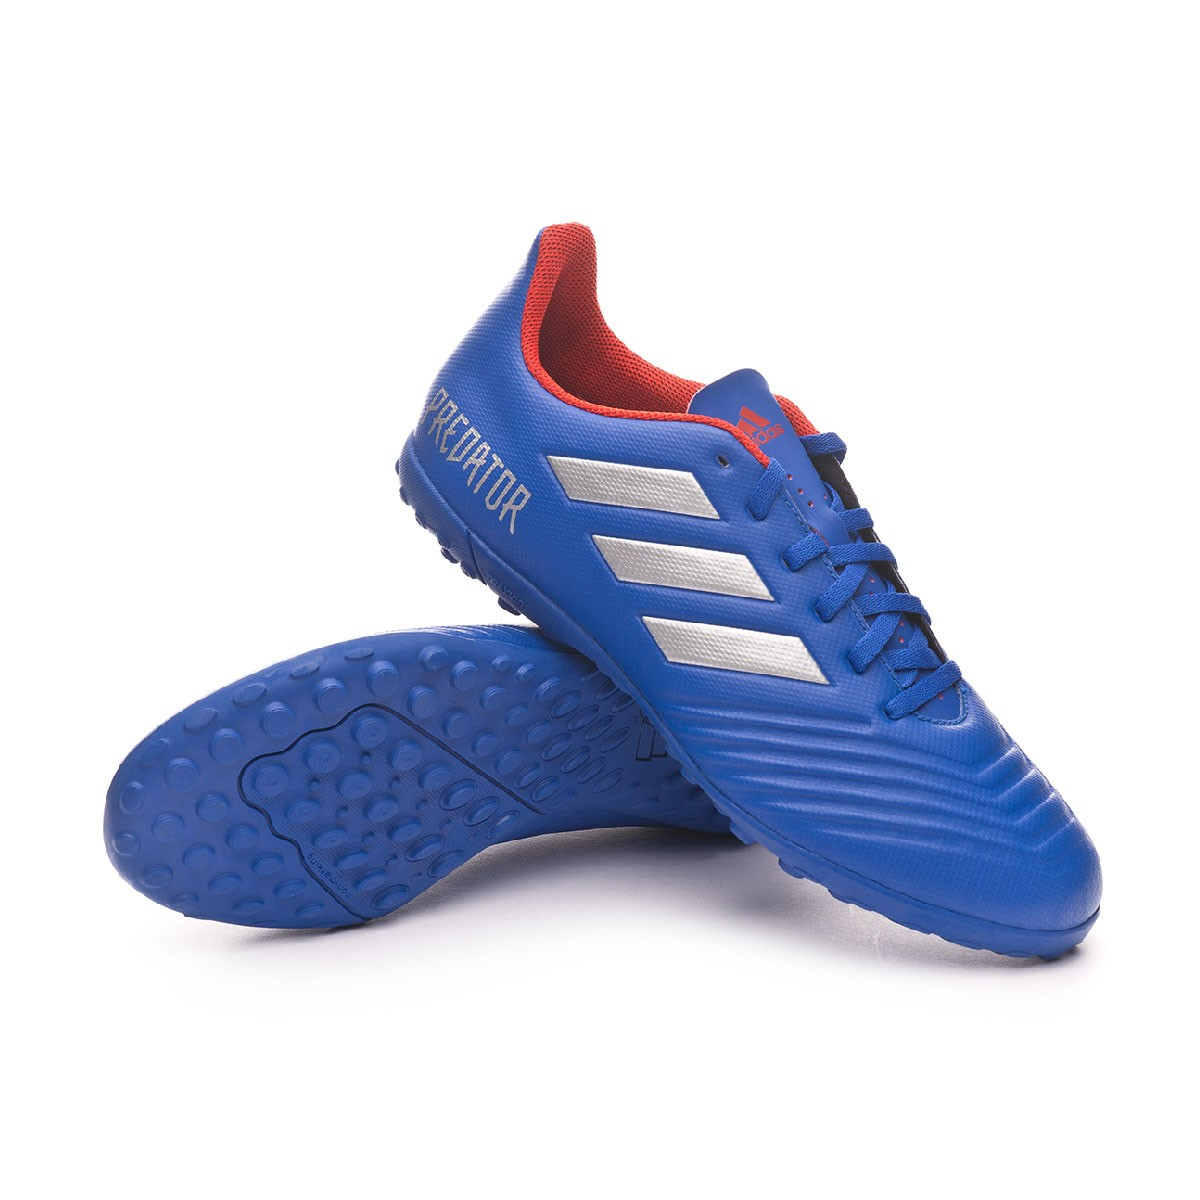 incompleto Parque jurásico lunes  Football Boot adidas Predator Tango 19.4 Turf Bold blue-Silver  metallic-Active red - Football store Fútbol Emotion